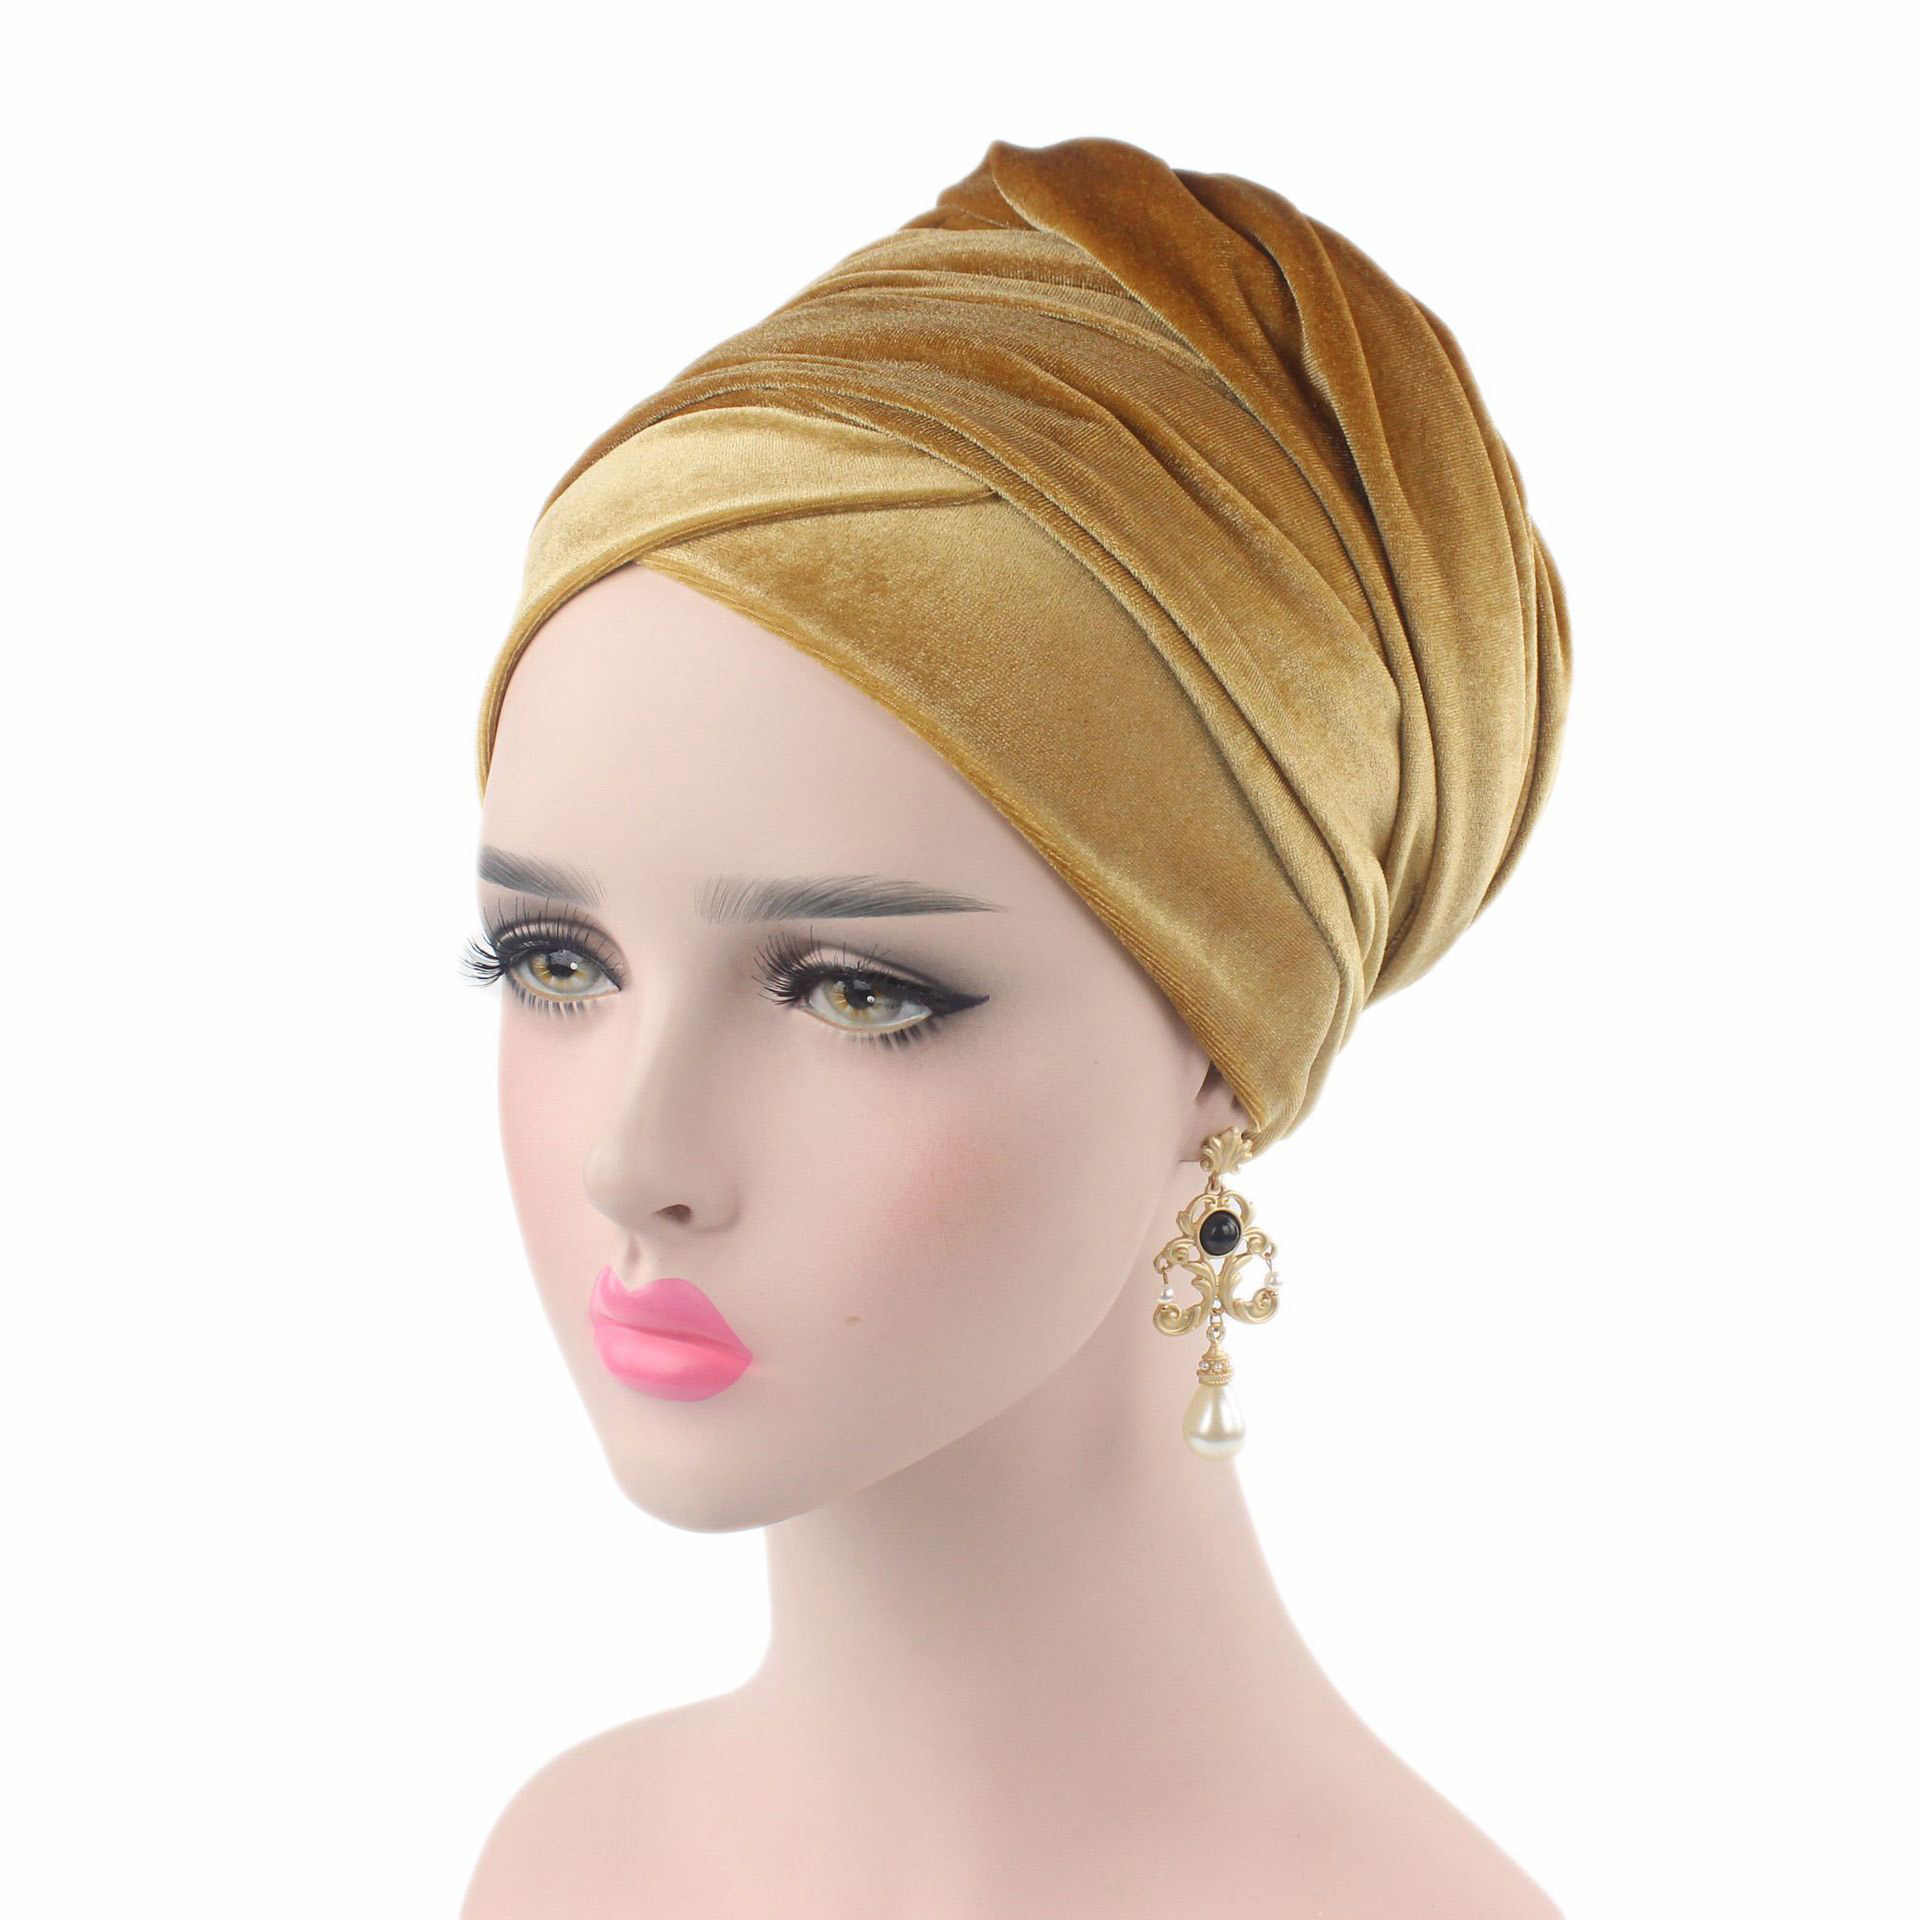 2019 plain Velvet hijab Turban Cap Muslim Long-tailed headscarf Hat islamic under scarf bonnet ladies african wrap head scarves